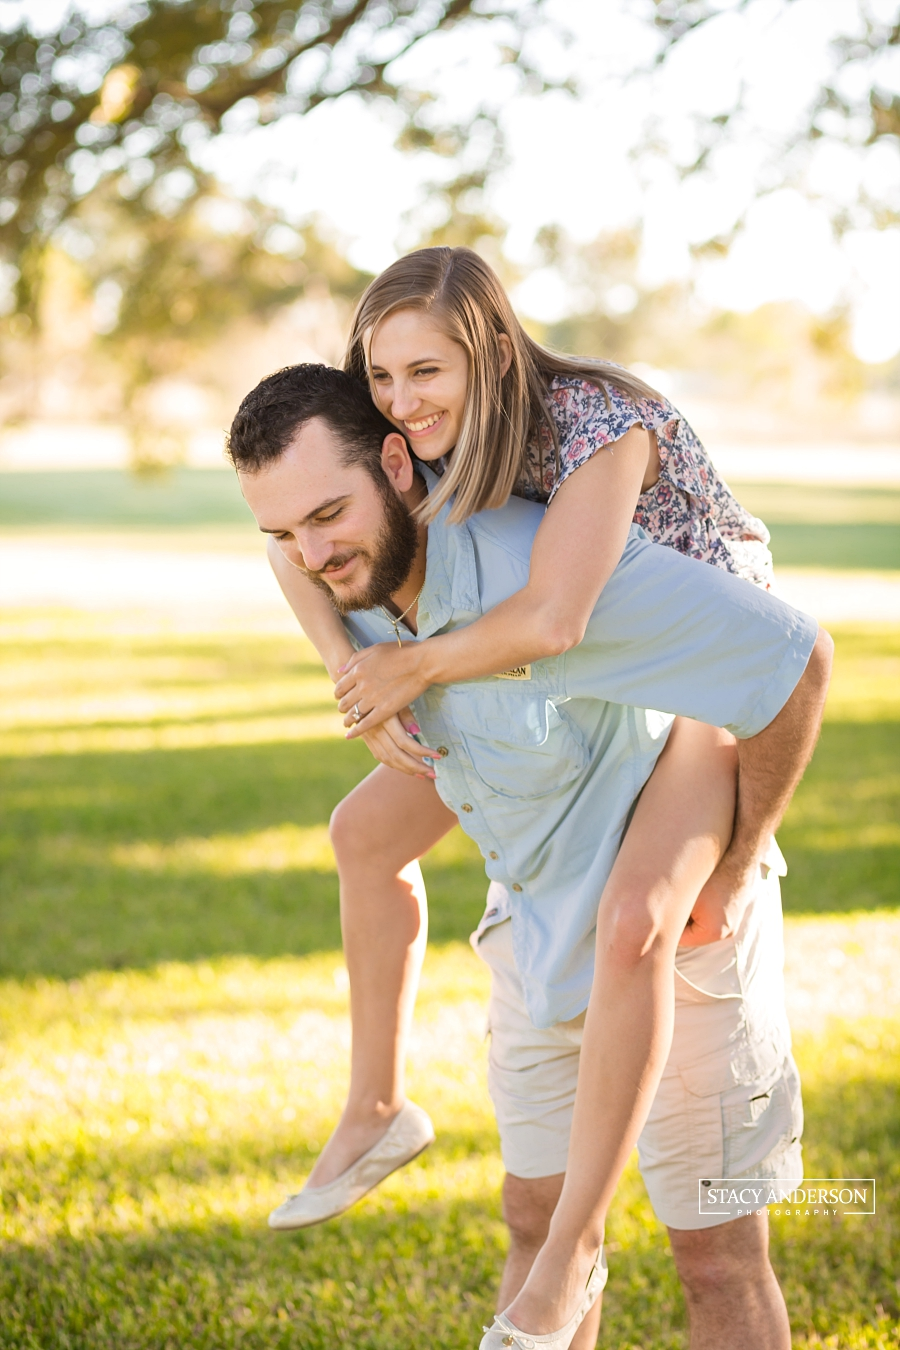 stacy-anderson-photography-alvin-wedding-photographer_0033